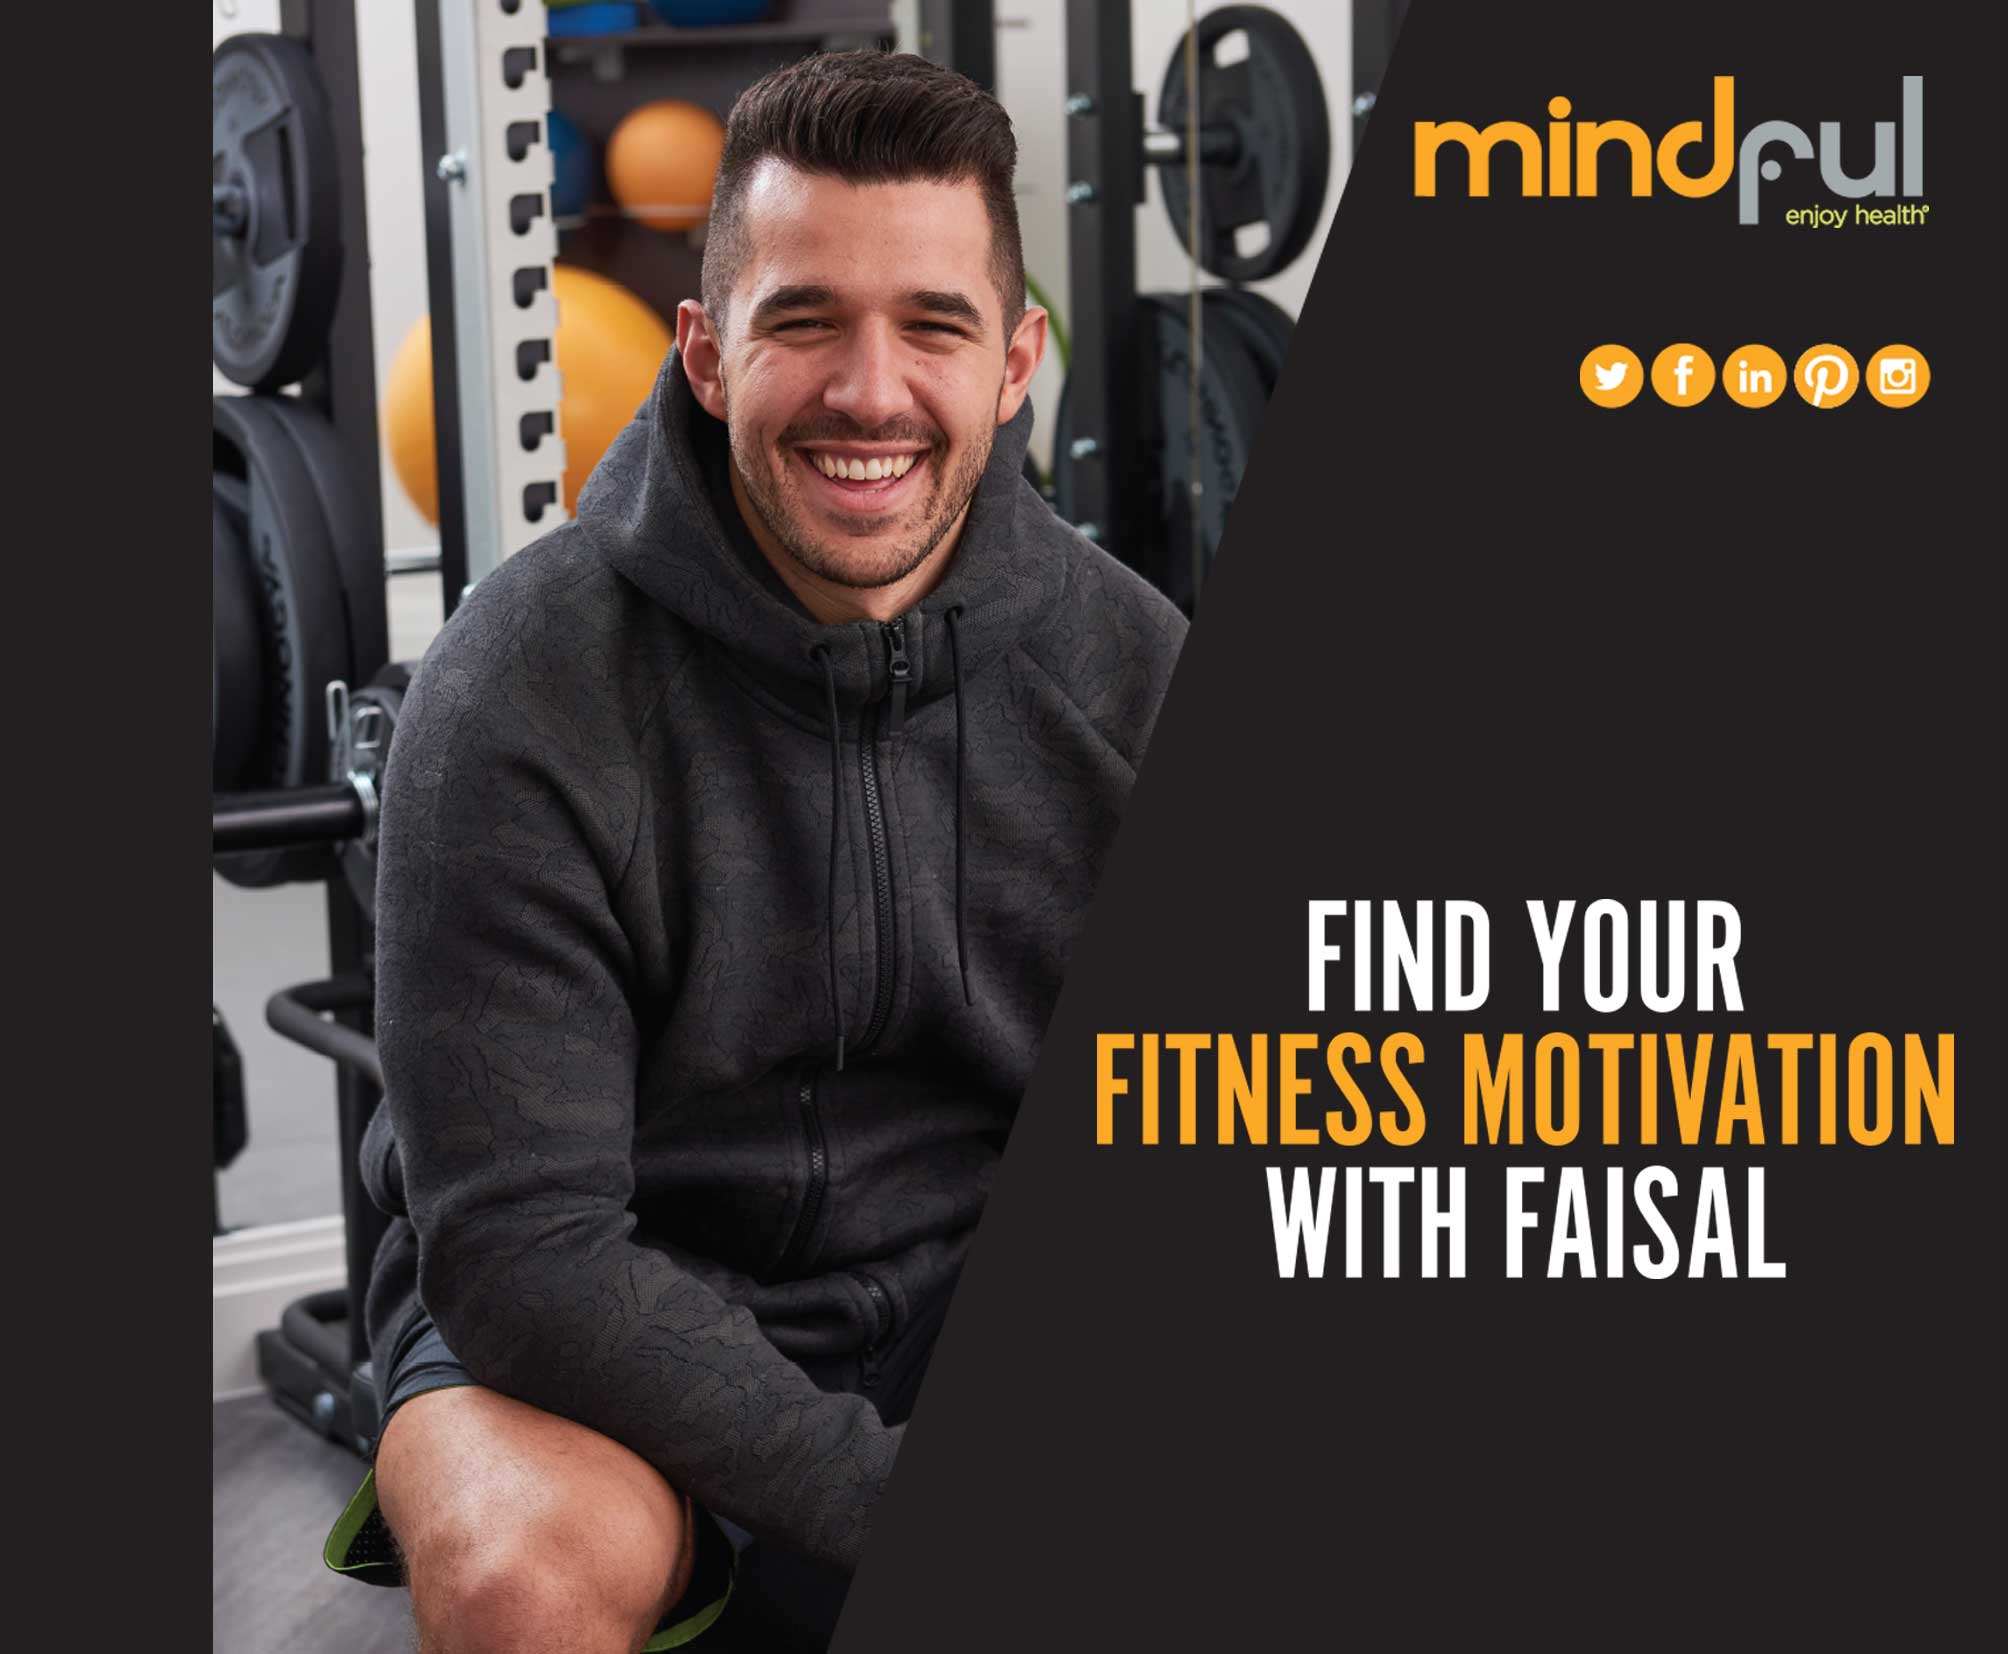 Faisal Fitness Motivation